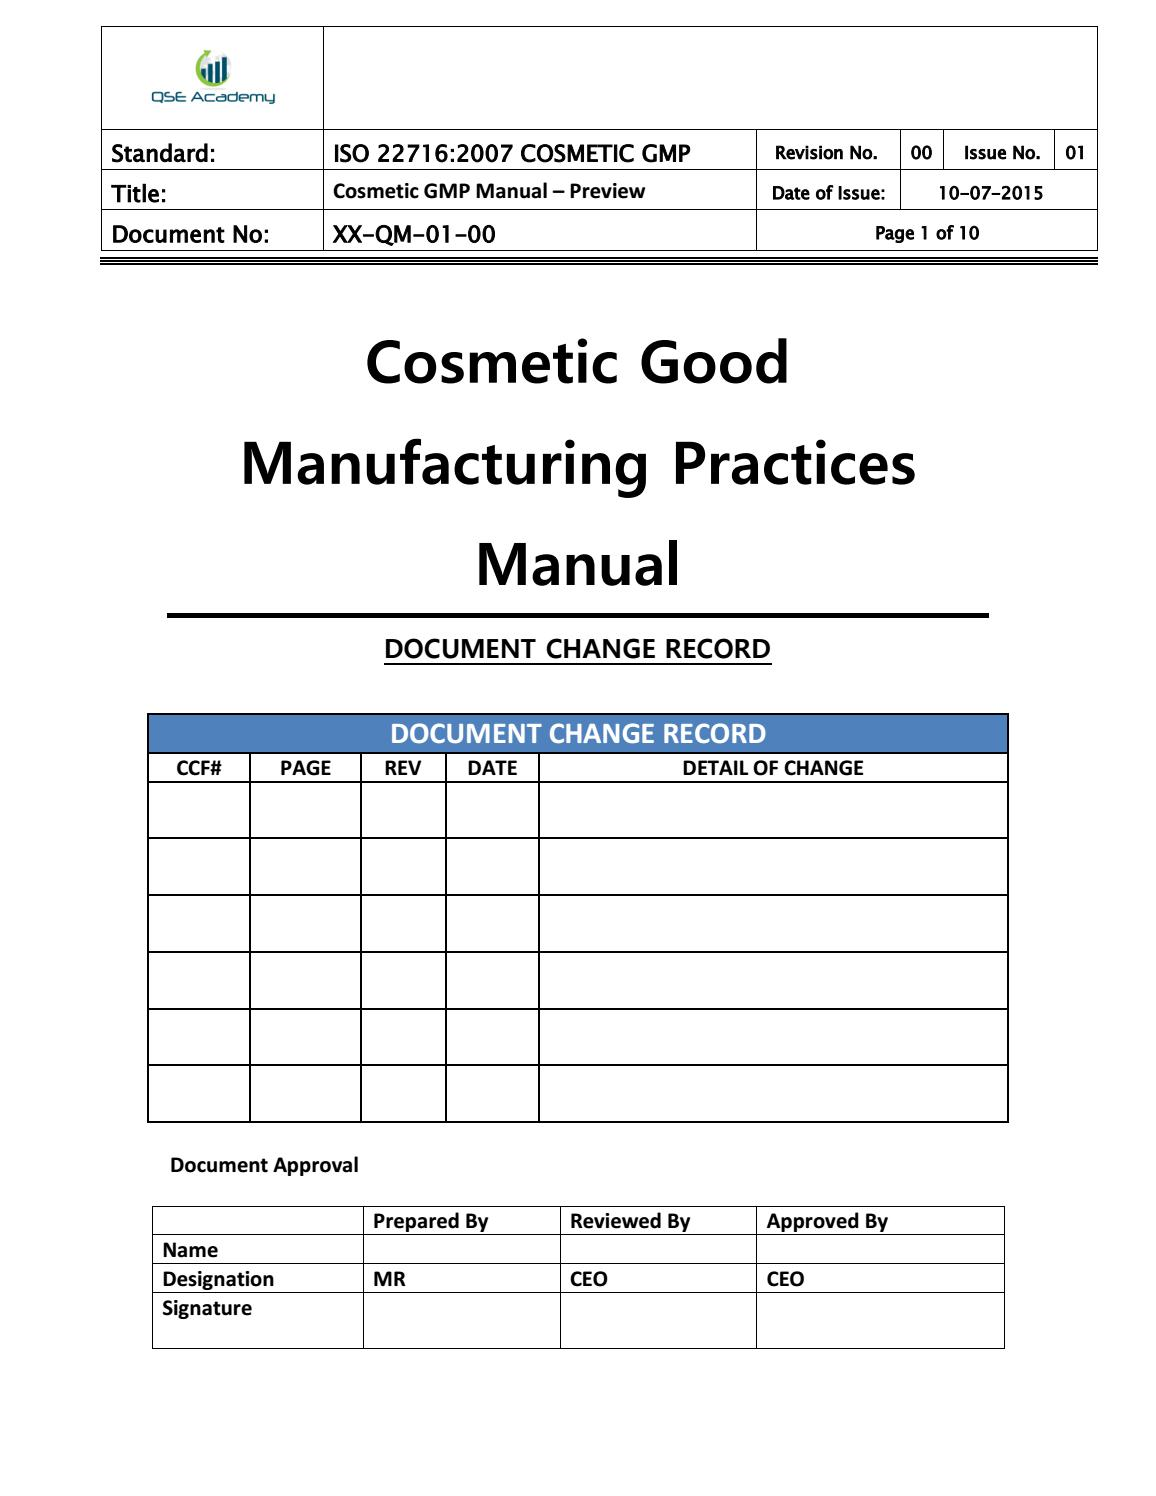 Sop Template For Cosmetic Industry